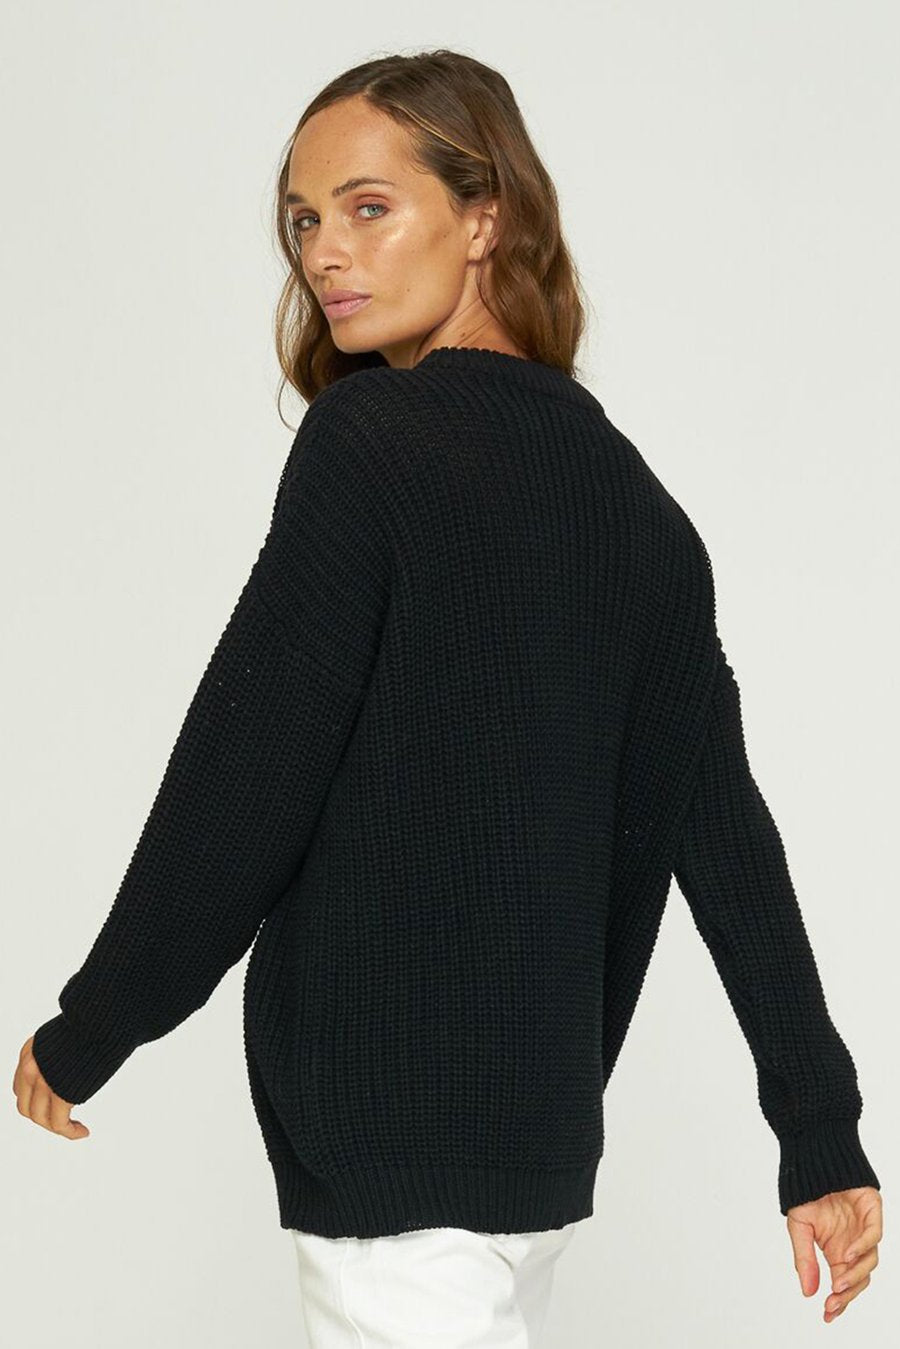 Rue Stiic-Beverly Boyfriend Knit-Black